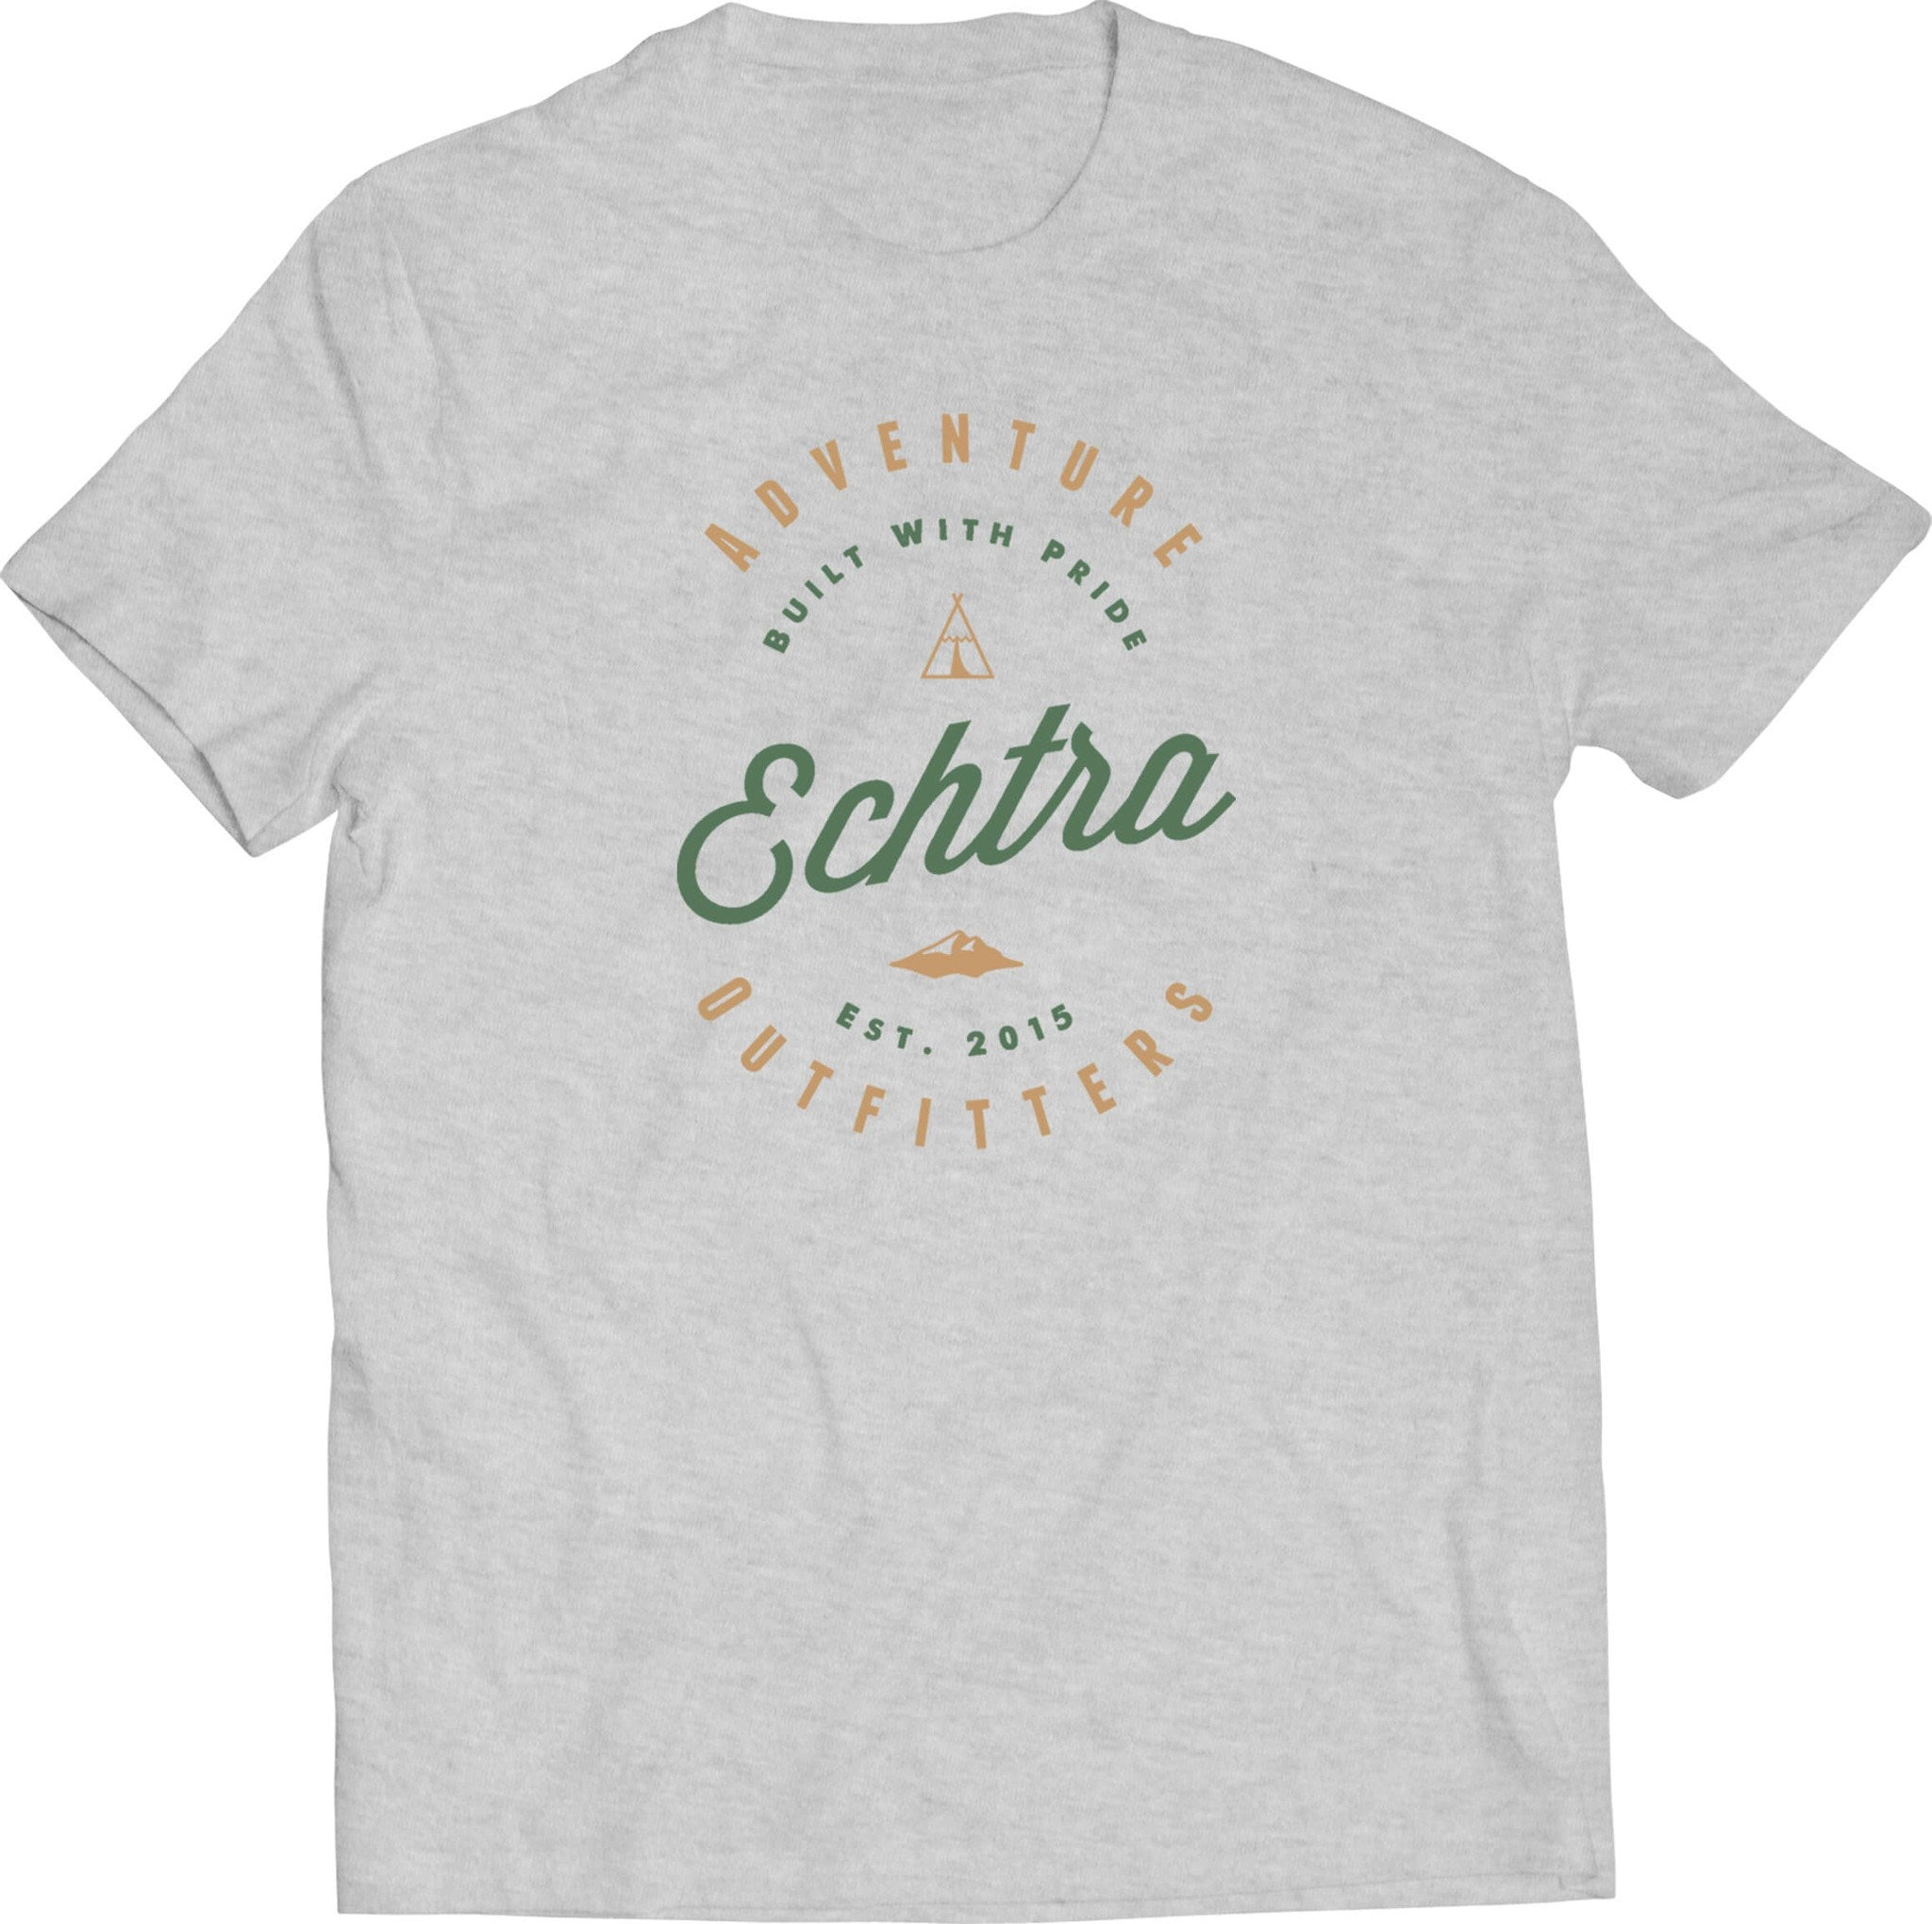 echtra outfitters built with pride tee